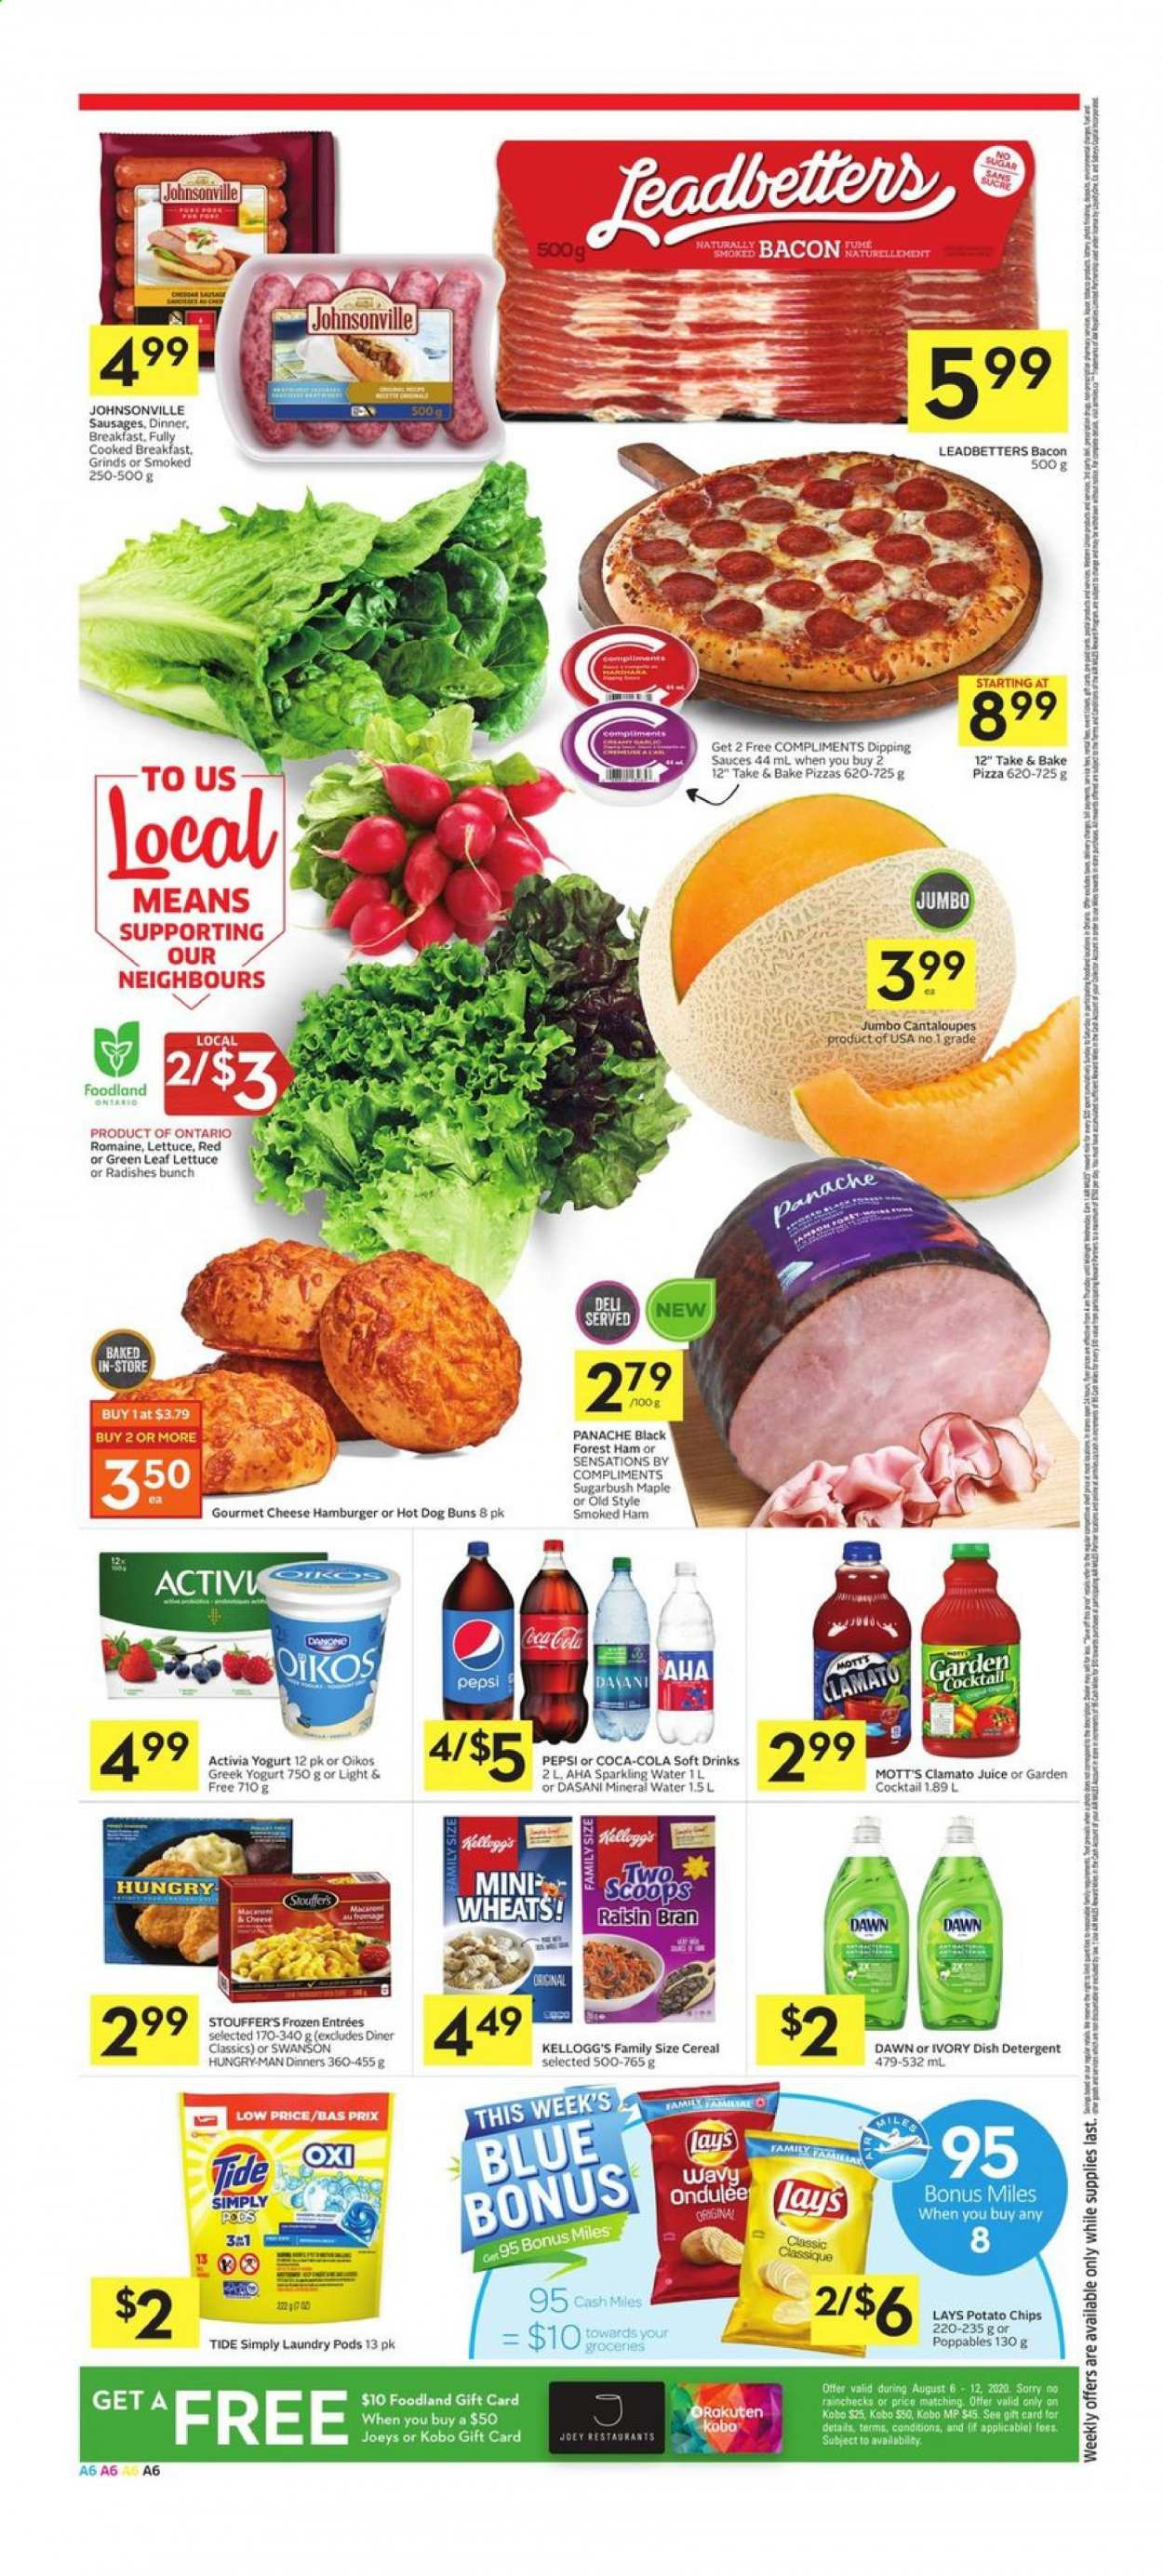 Foodland Flyer - August 06, 2020 - August 12, 2020 - Sales products - ale, bacon, bran, cantaloupe, cereals, detergent, greek yogurt, mineral water, radishes, sausages, sugar, tide, yogurt, ham, hot dog, pizza, potato chips, pepsi, chips, lettuce, cheese, juice, burgerON DUPLICATE KEY UPDATE `name` = VALUES(`name`); burgers, smoked ham, sparkling water, hamburger, gift card, cereal, danone, lay's, activia, kellogg's. Page 6.